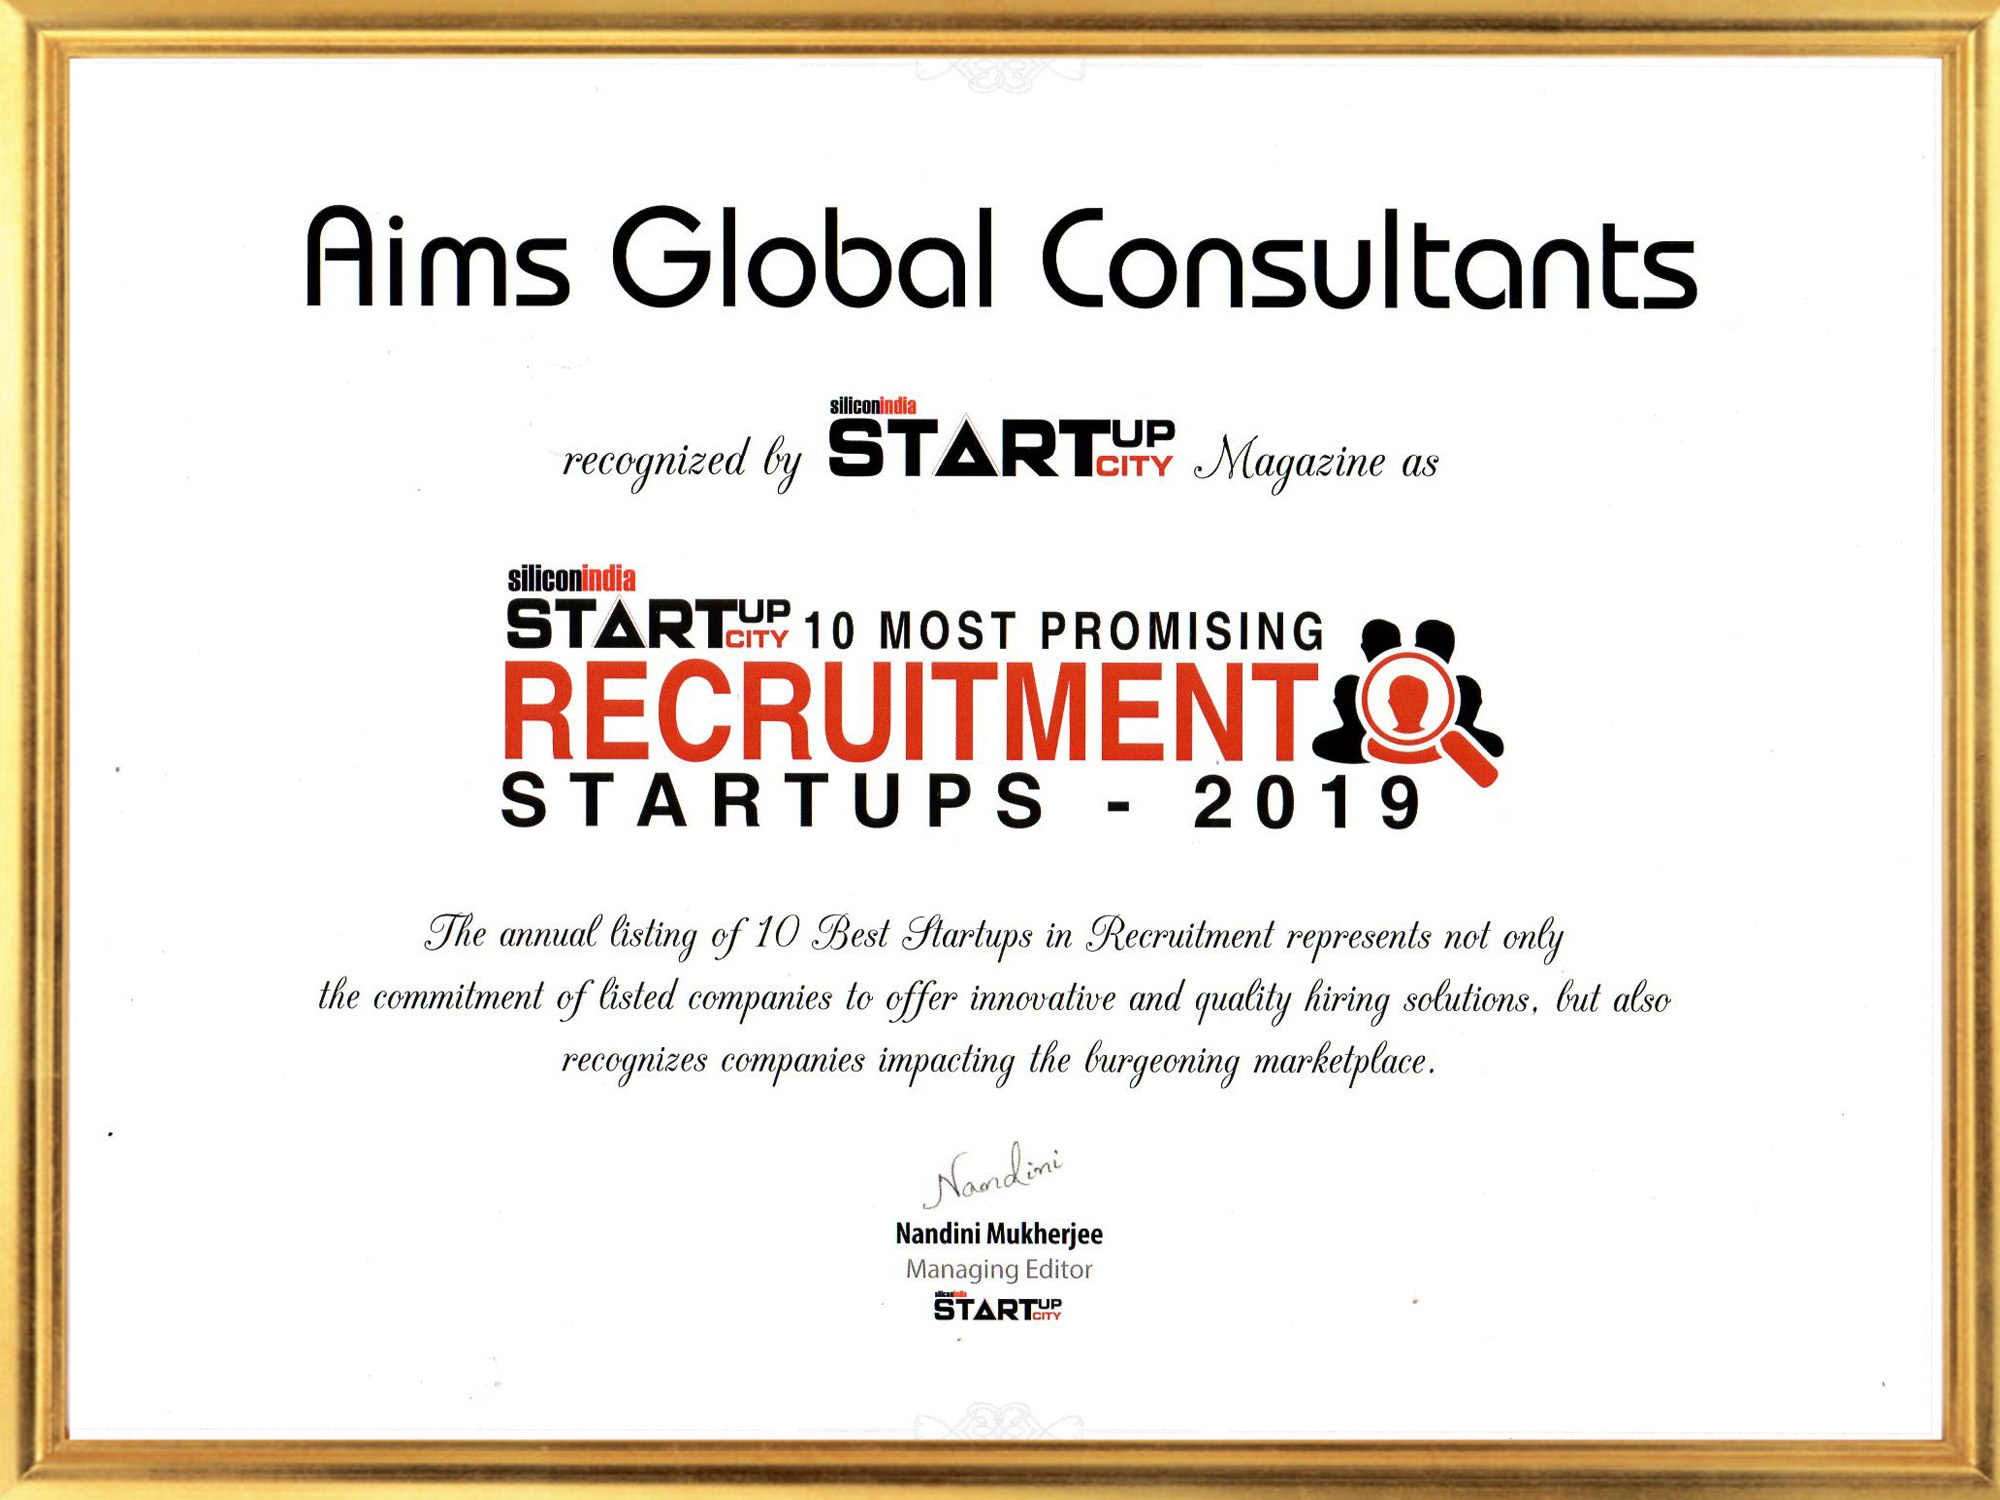 Silicon india certificate for 10 most promising recruitment startups company